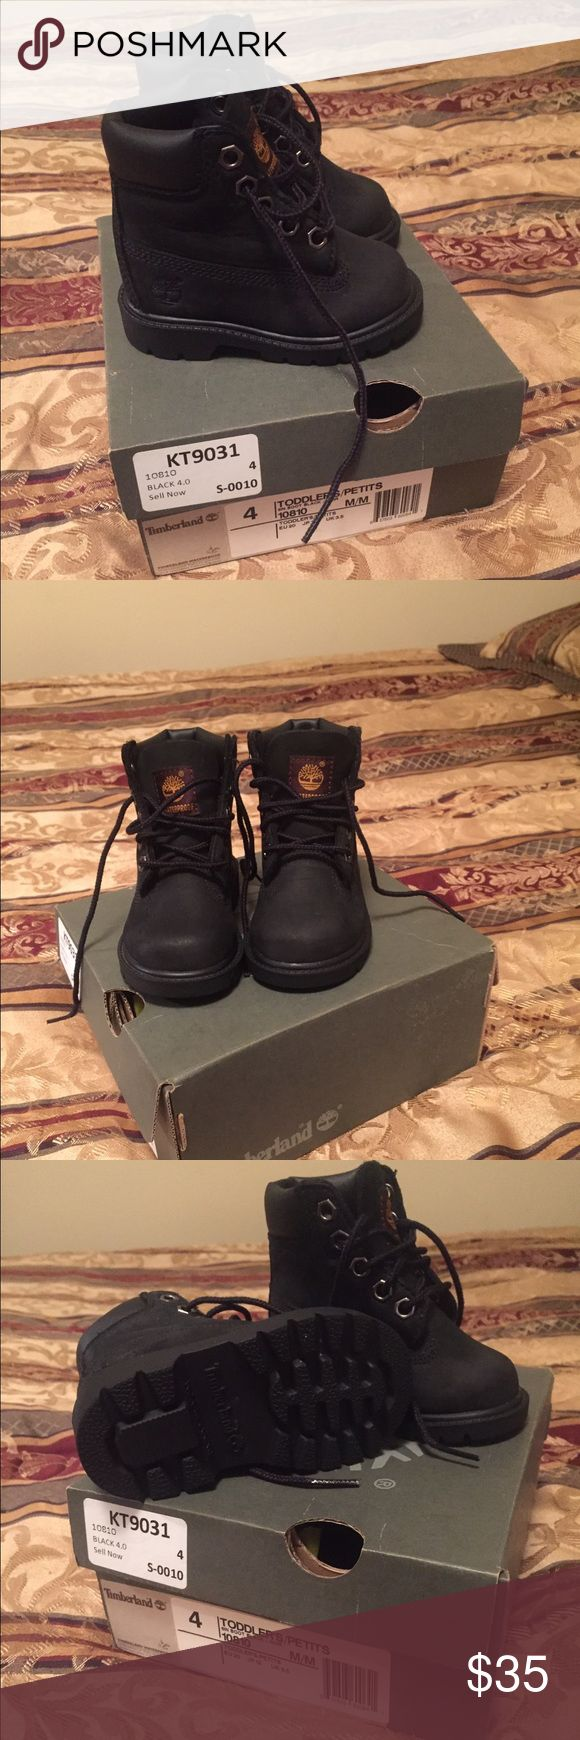 Toddler Timberland Boots 4c Black Timberland Boots. Only wore twice & in perfect condition! Size 4c Timberland Shoes Boots